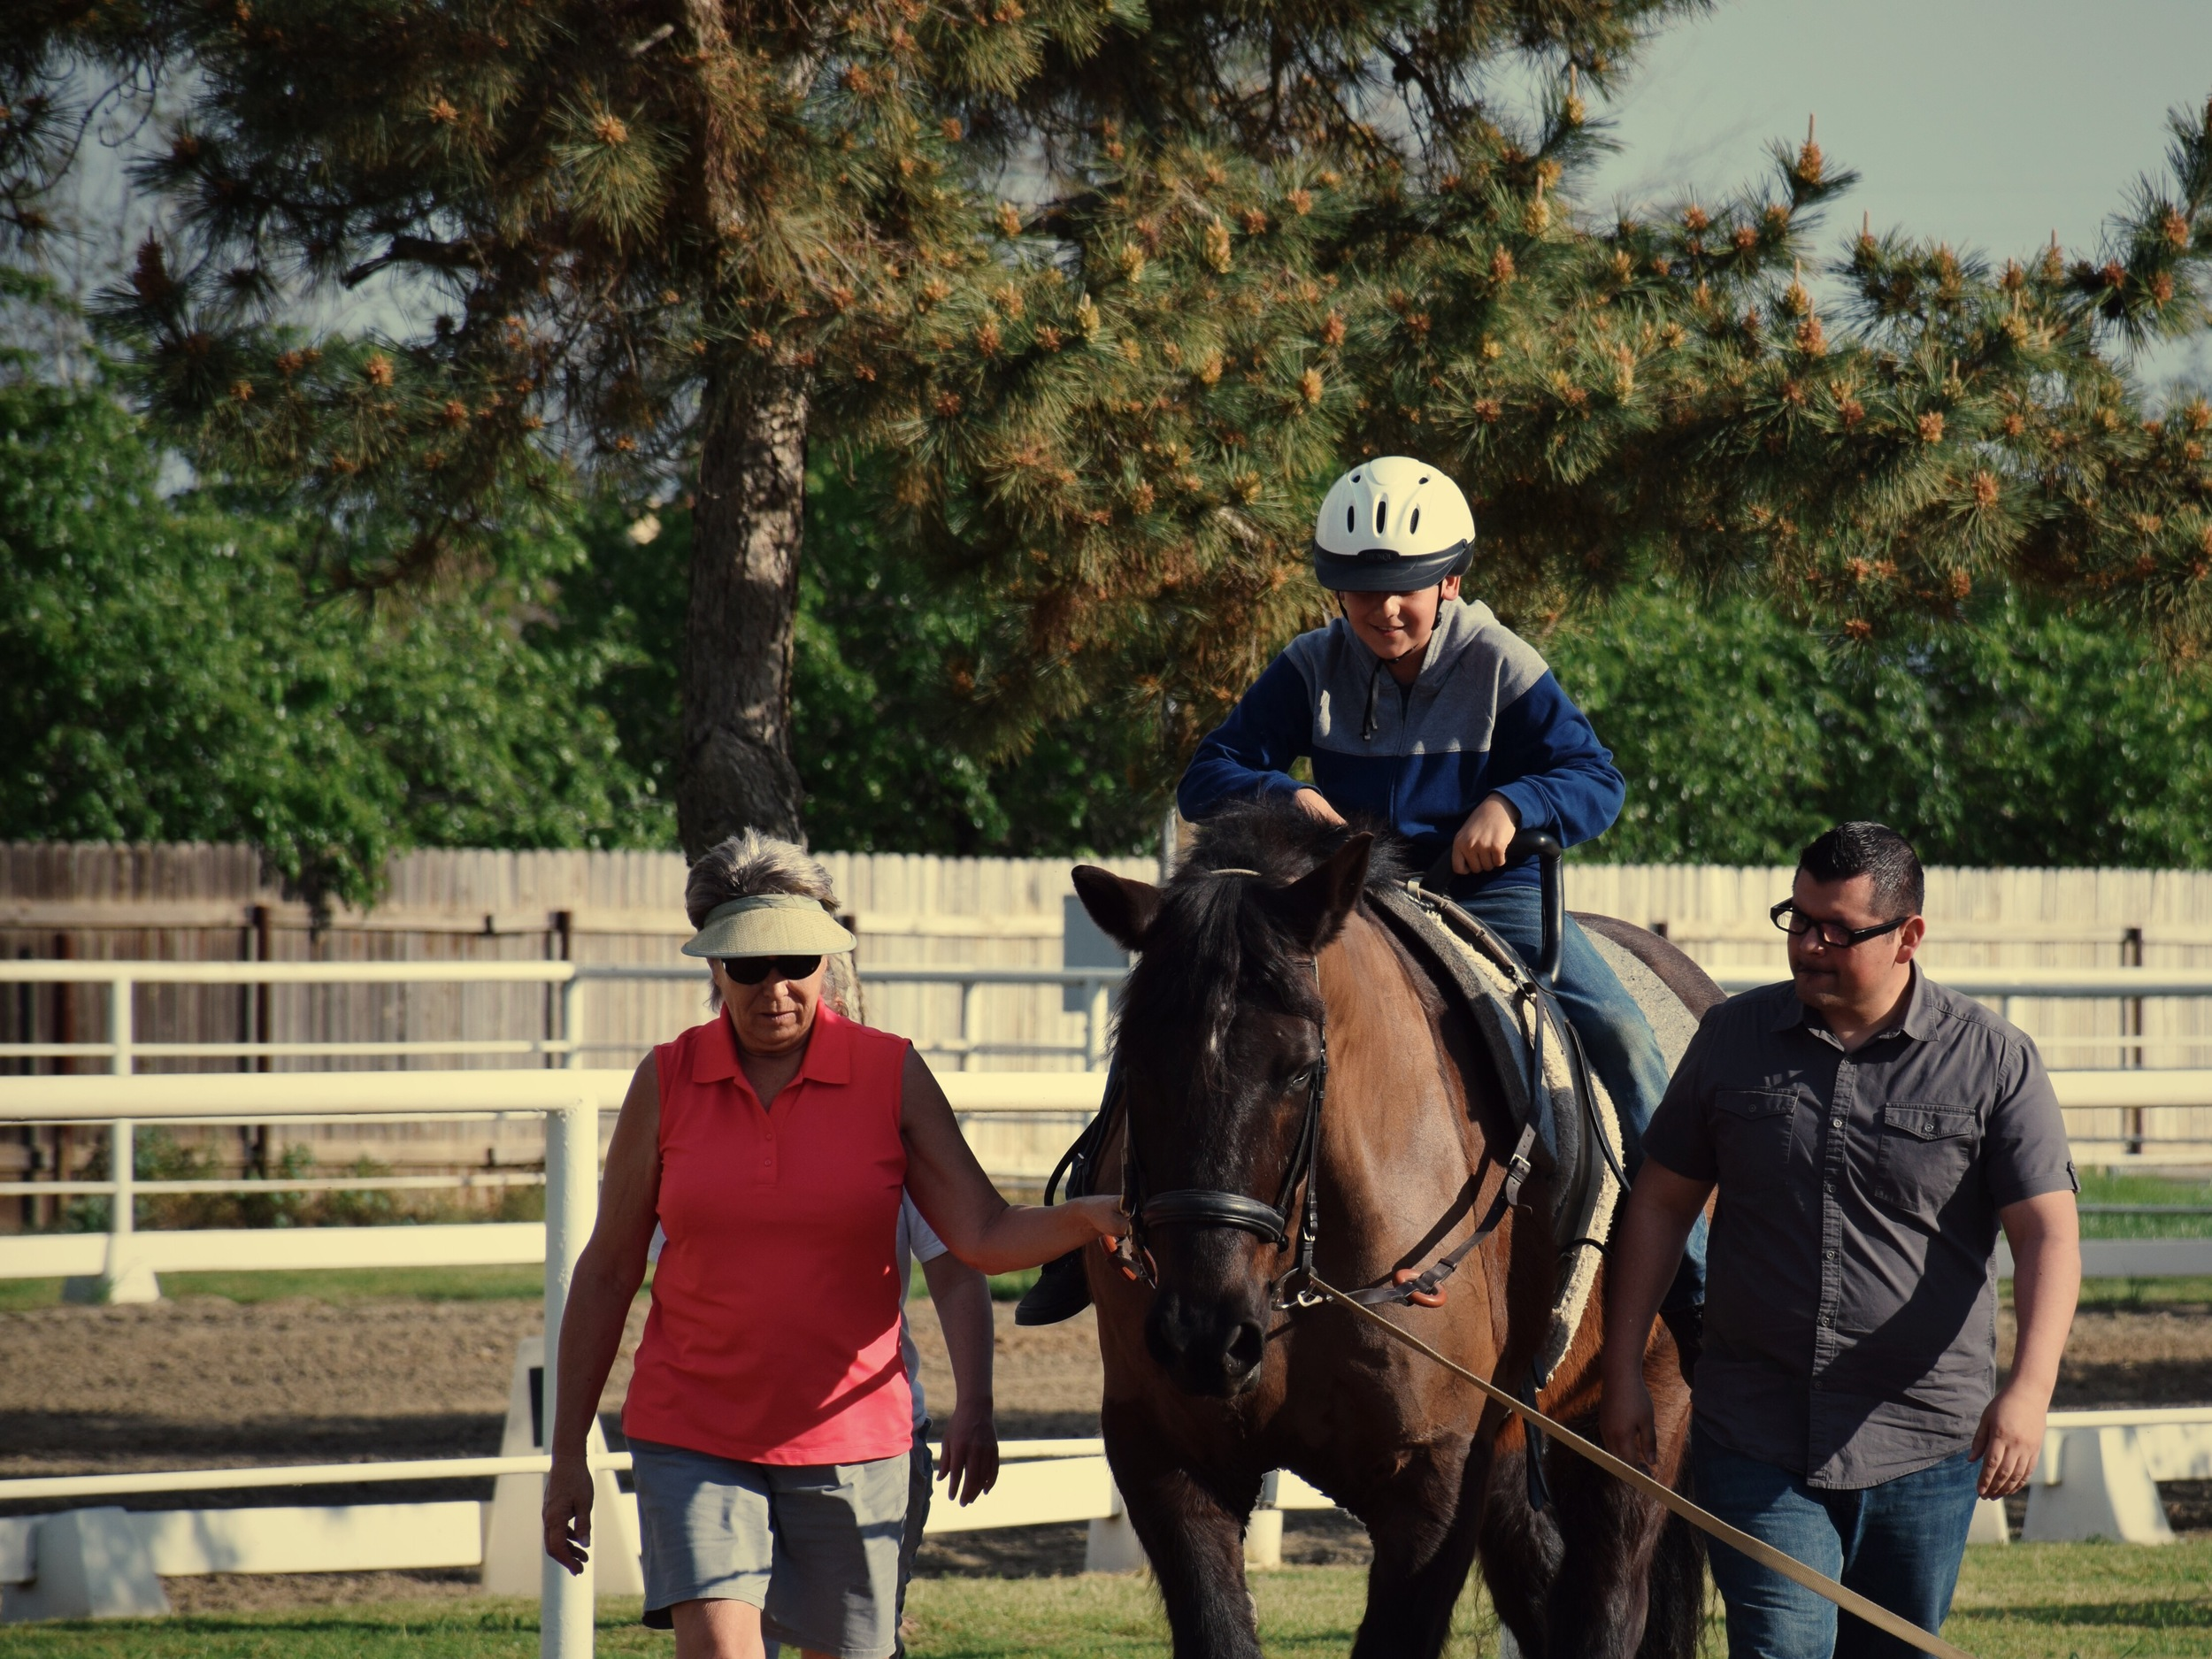 A rider experiences riding horseback for the first time